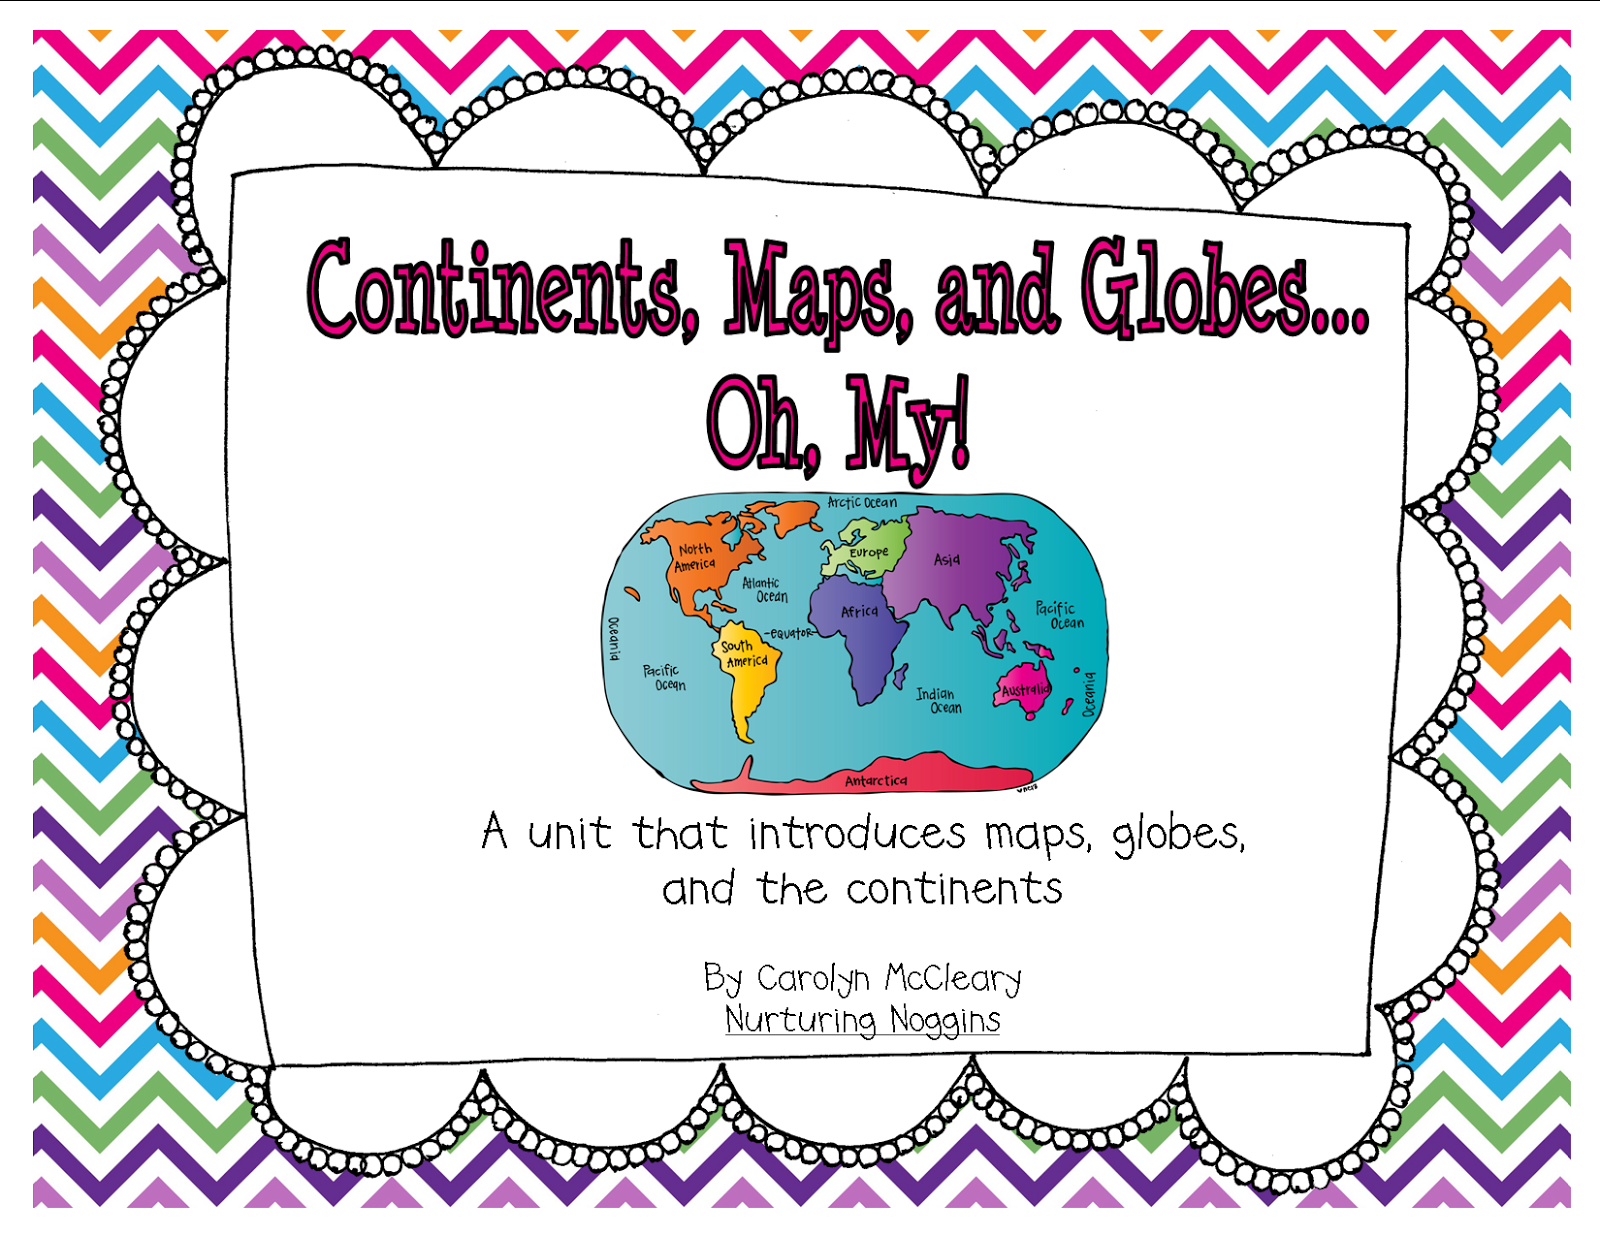 Nurturing Noggins Continents Maps And Globes Oh My